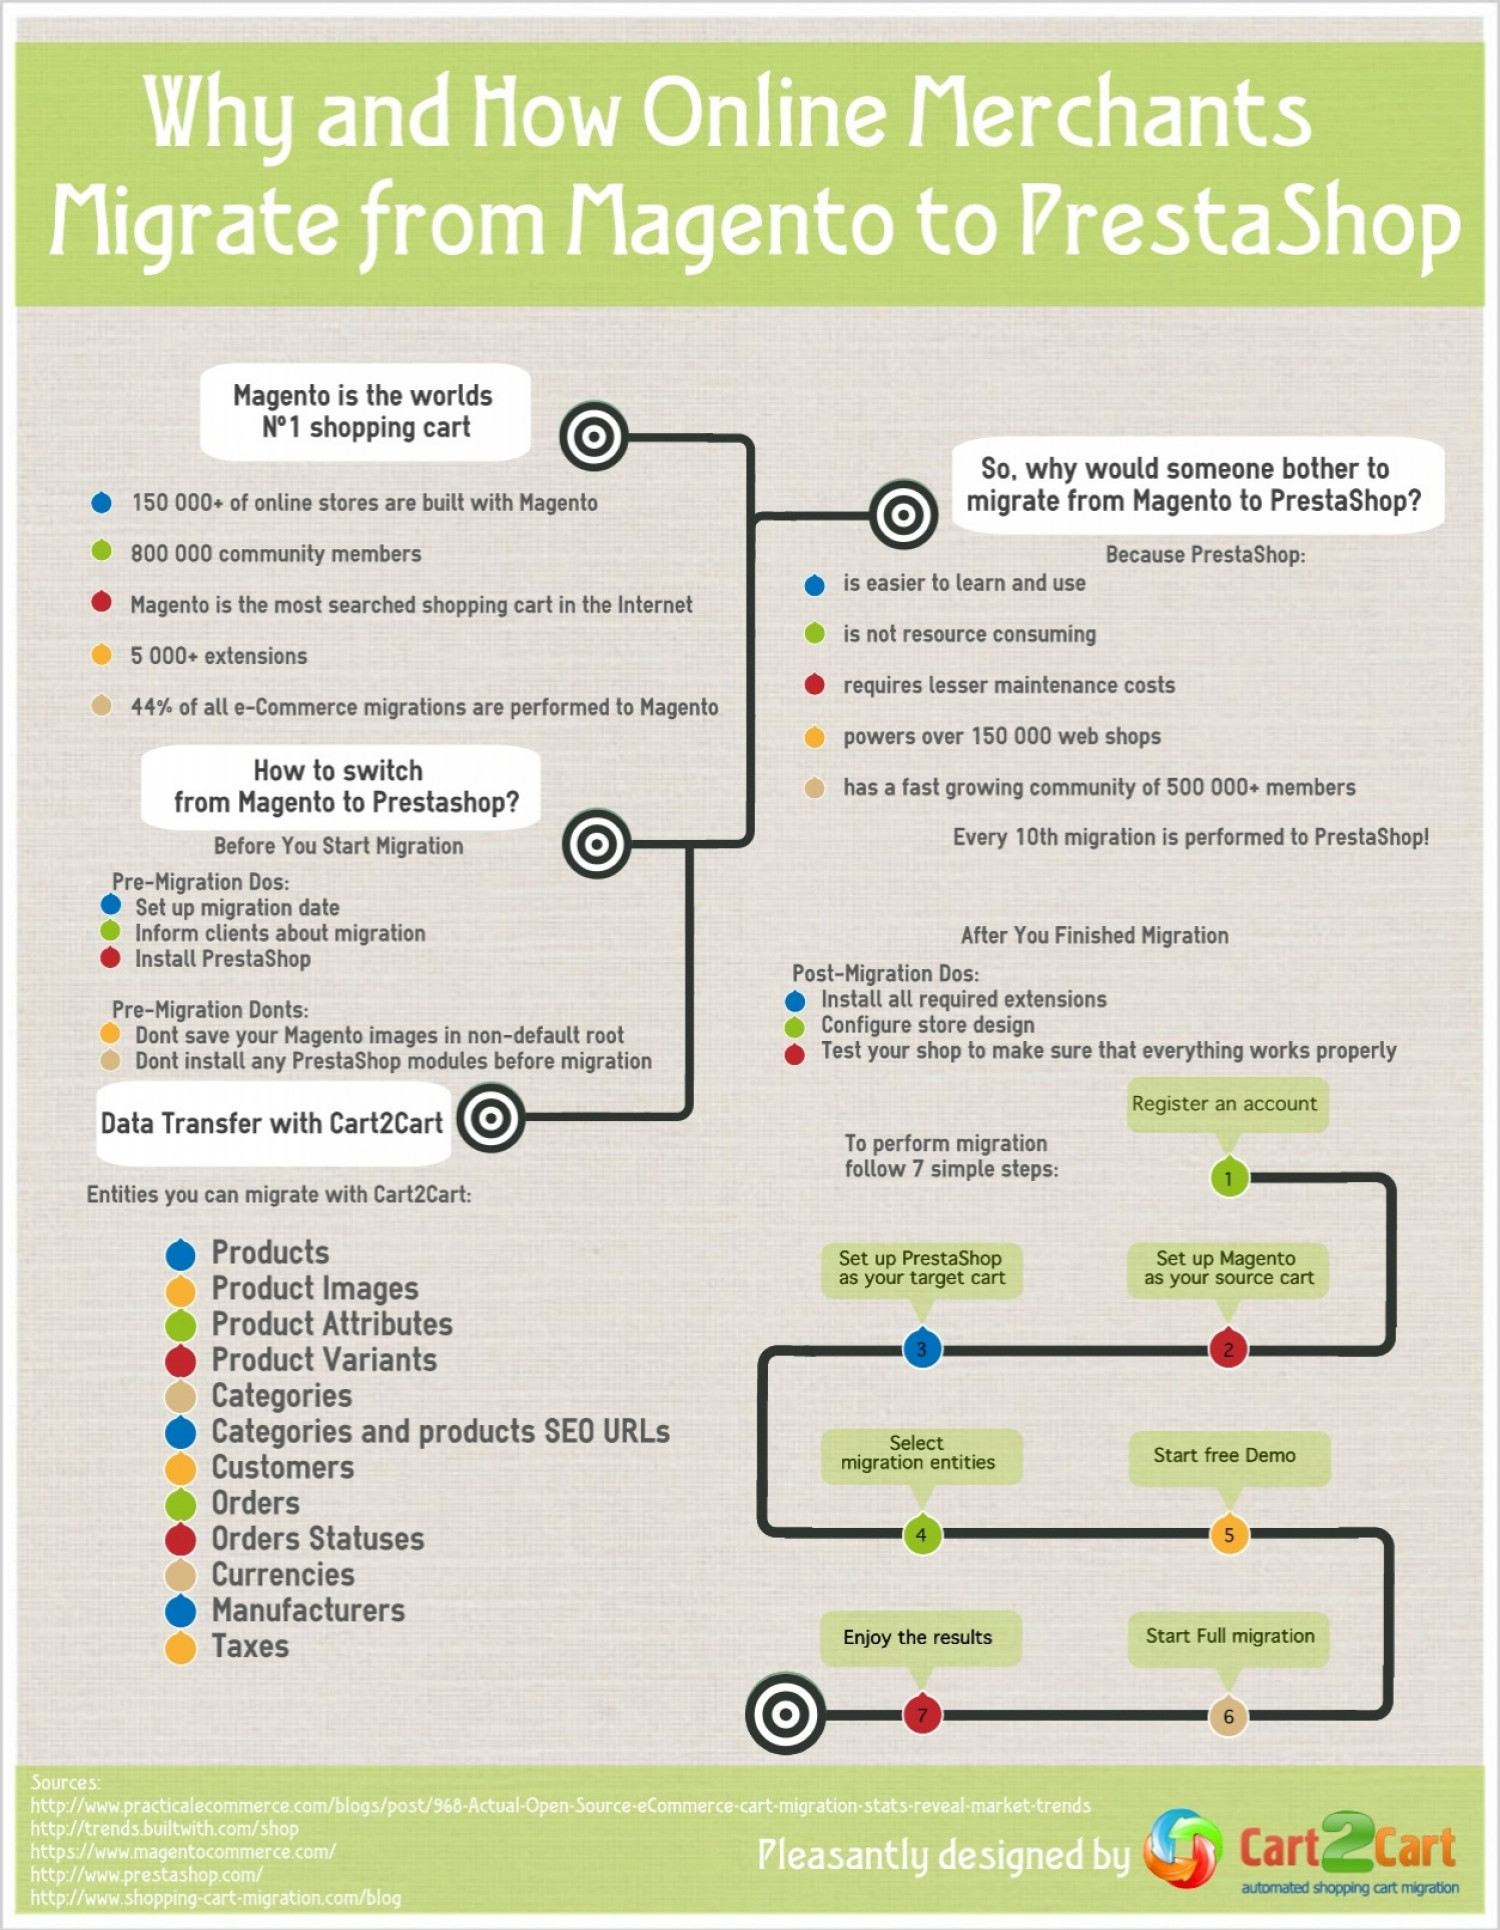 Why and How Online Merchants Migrate from Magento to PrestaShop Infographic